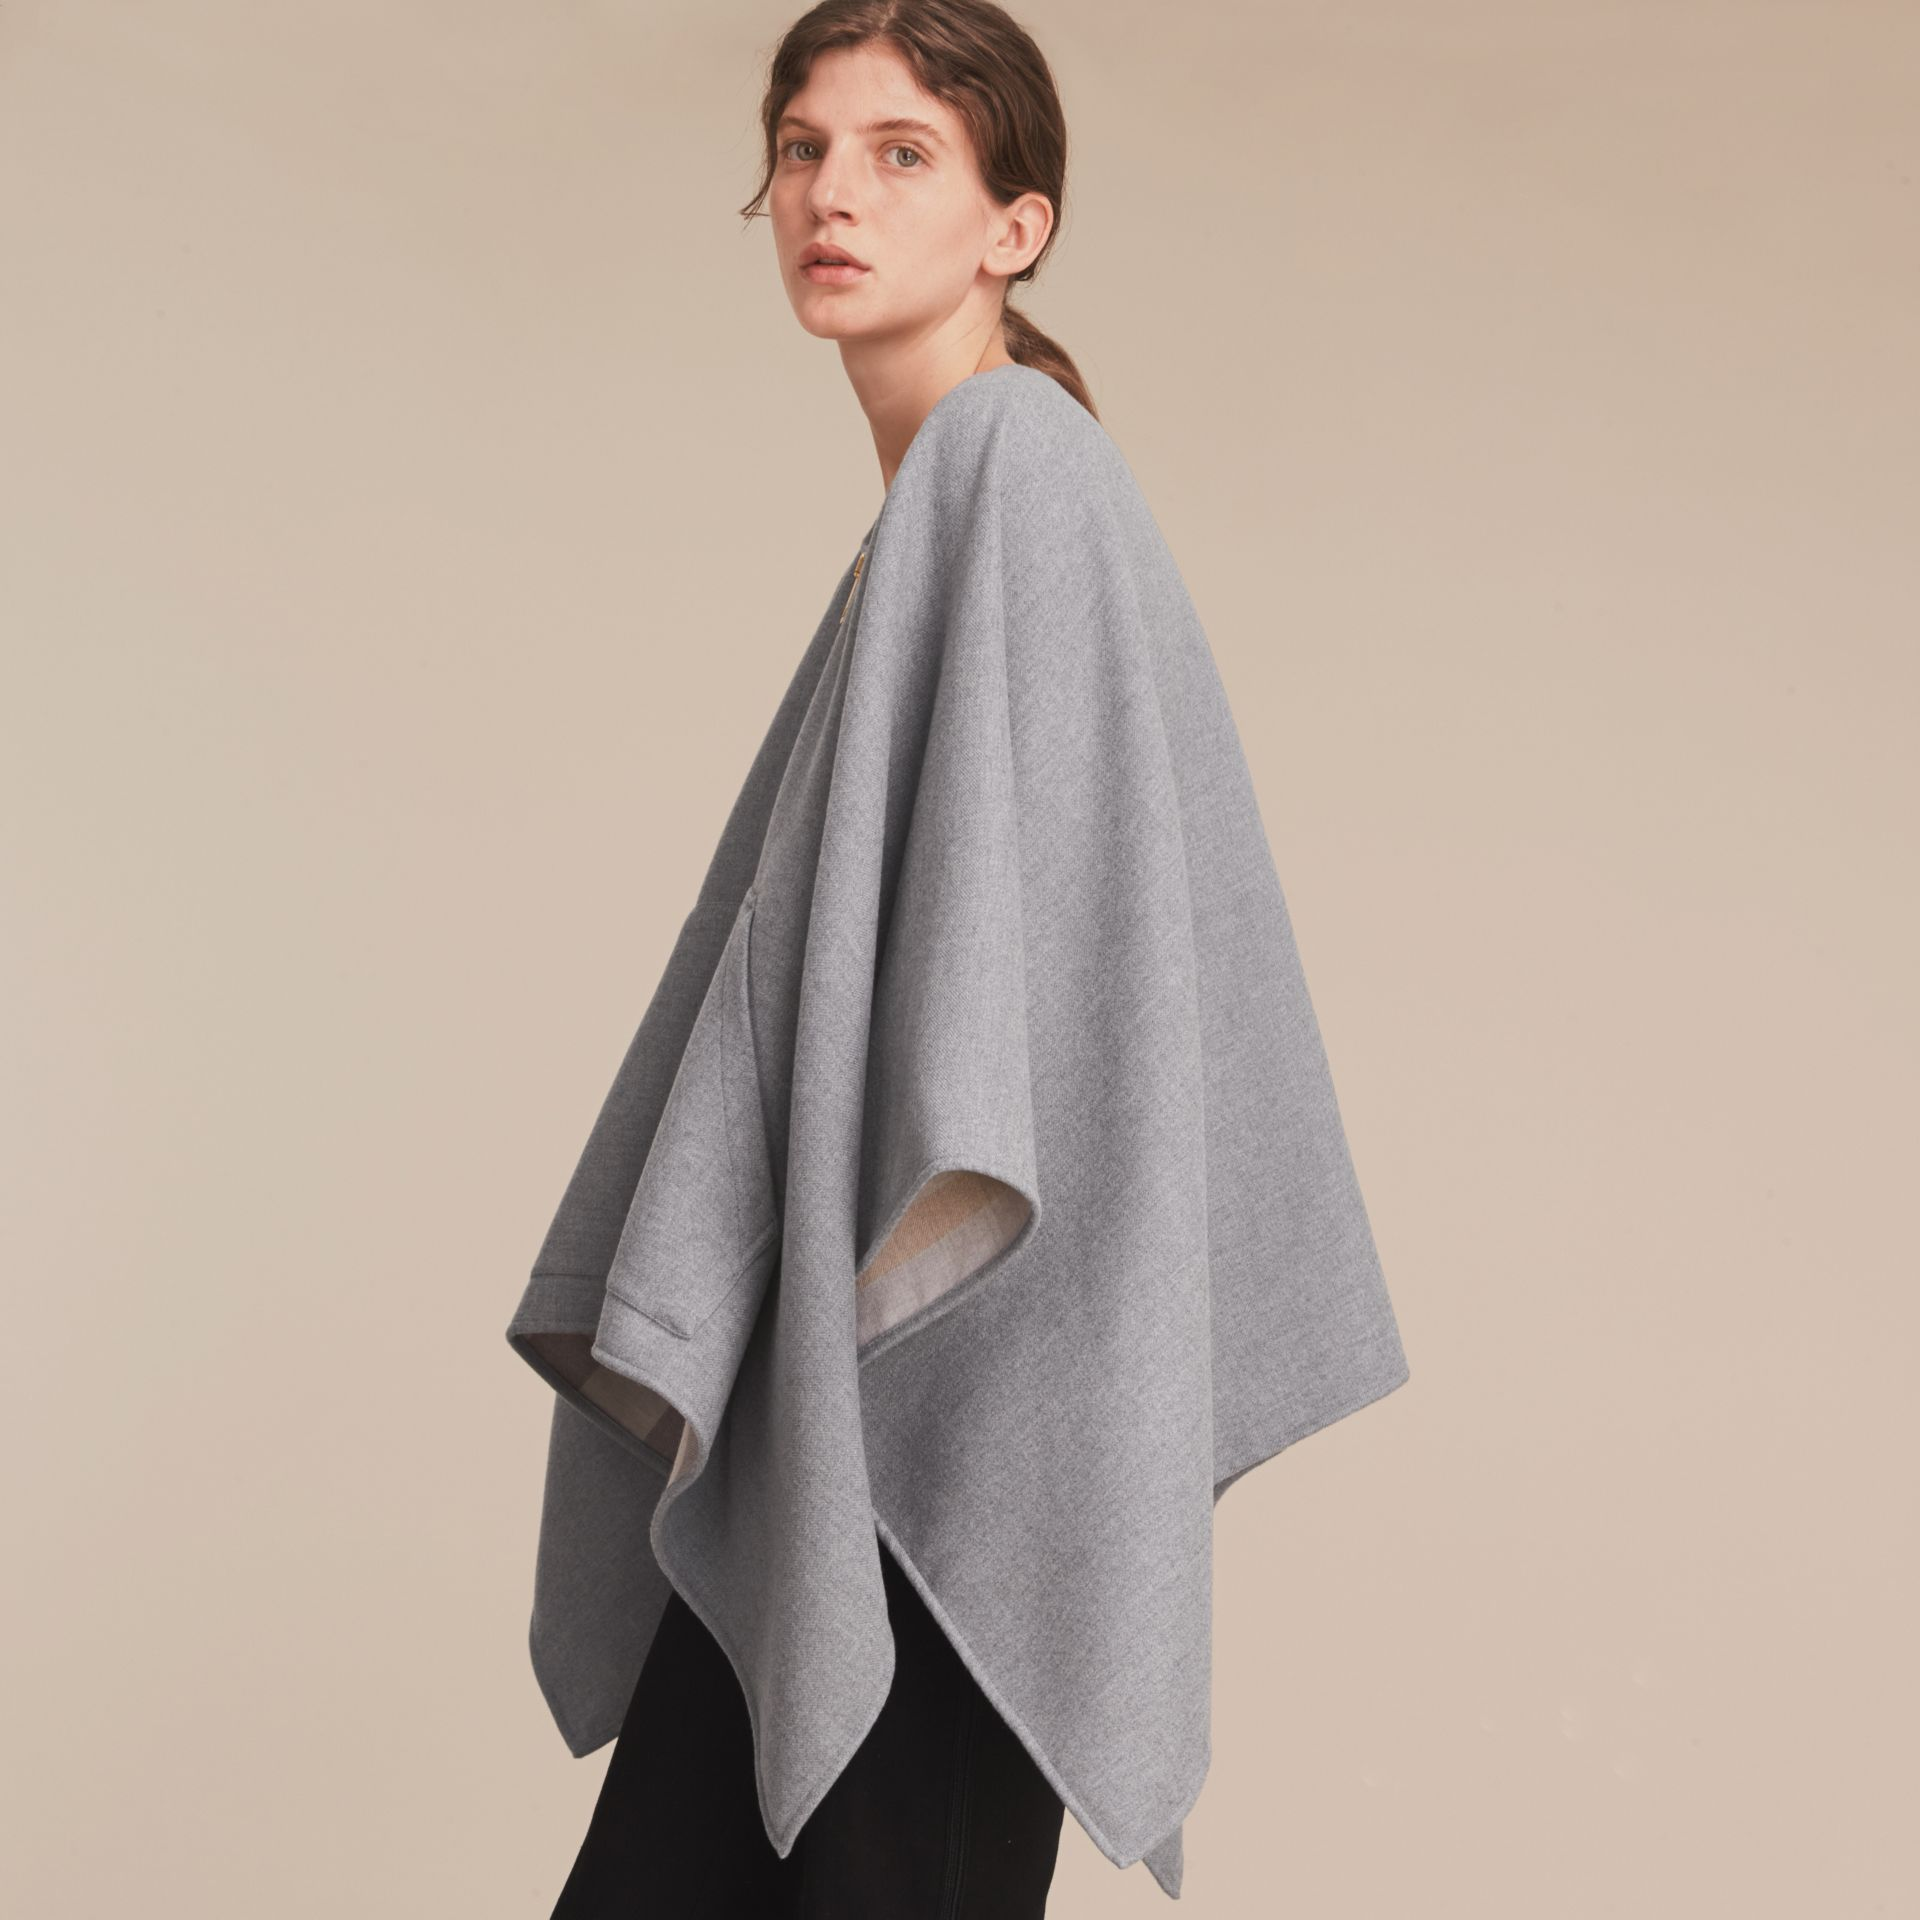 Merino Wool Poncho in Light Grey - Women | Burberry - gallery image 6